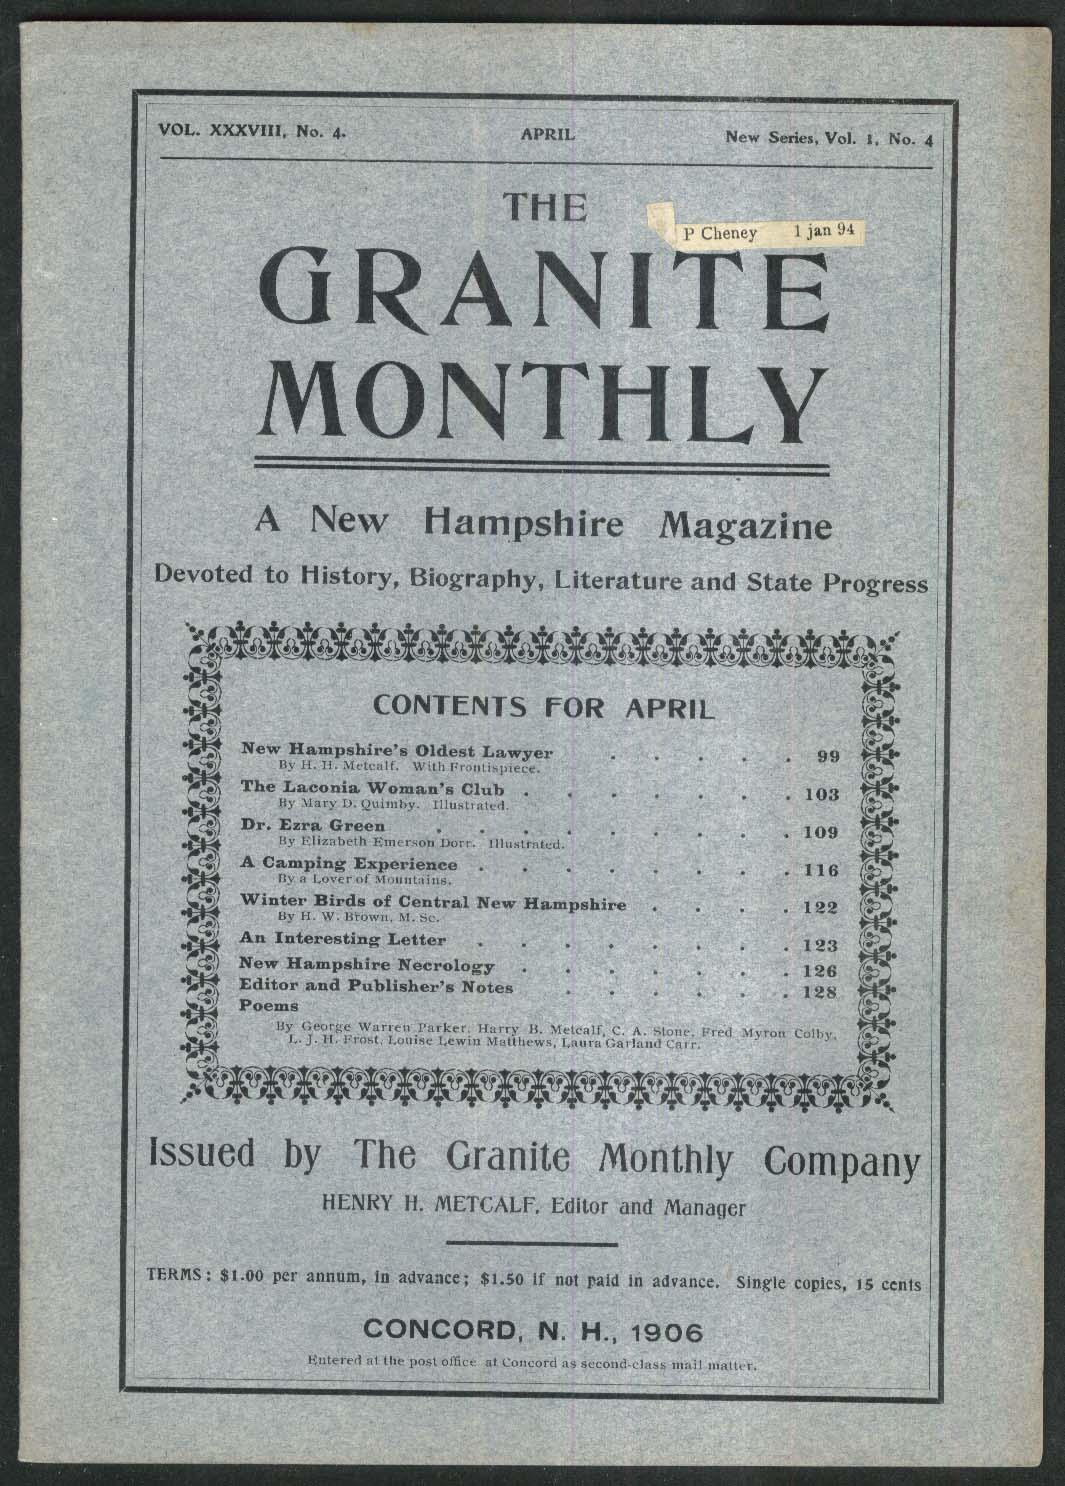 GRANITE MONTHLY New Hampshire Laconia Woman's Club Winter Birds + 4 1906